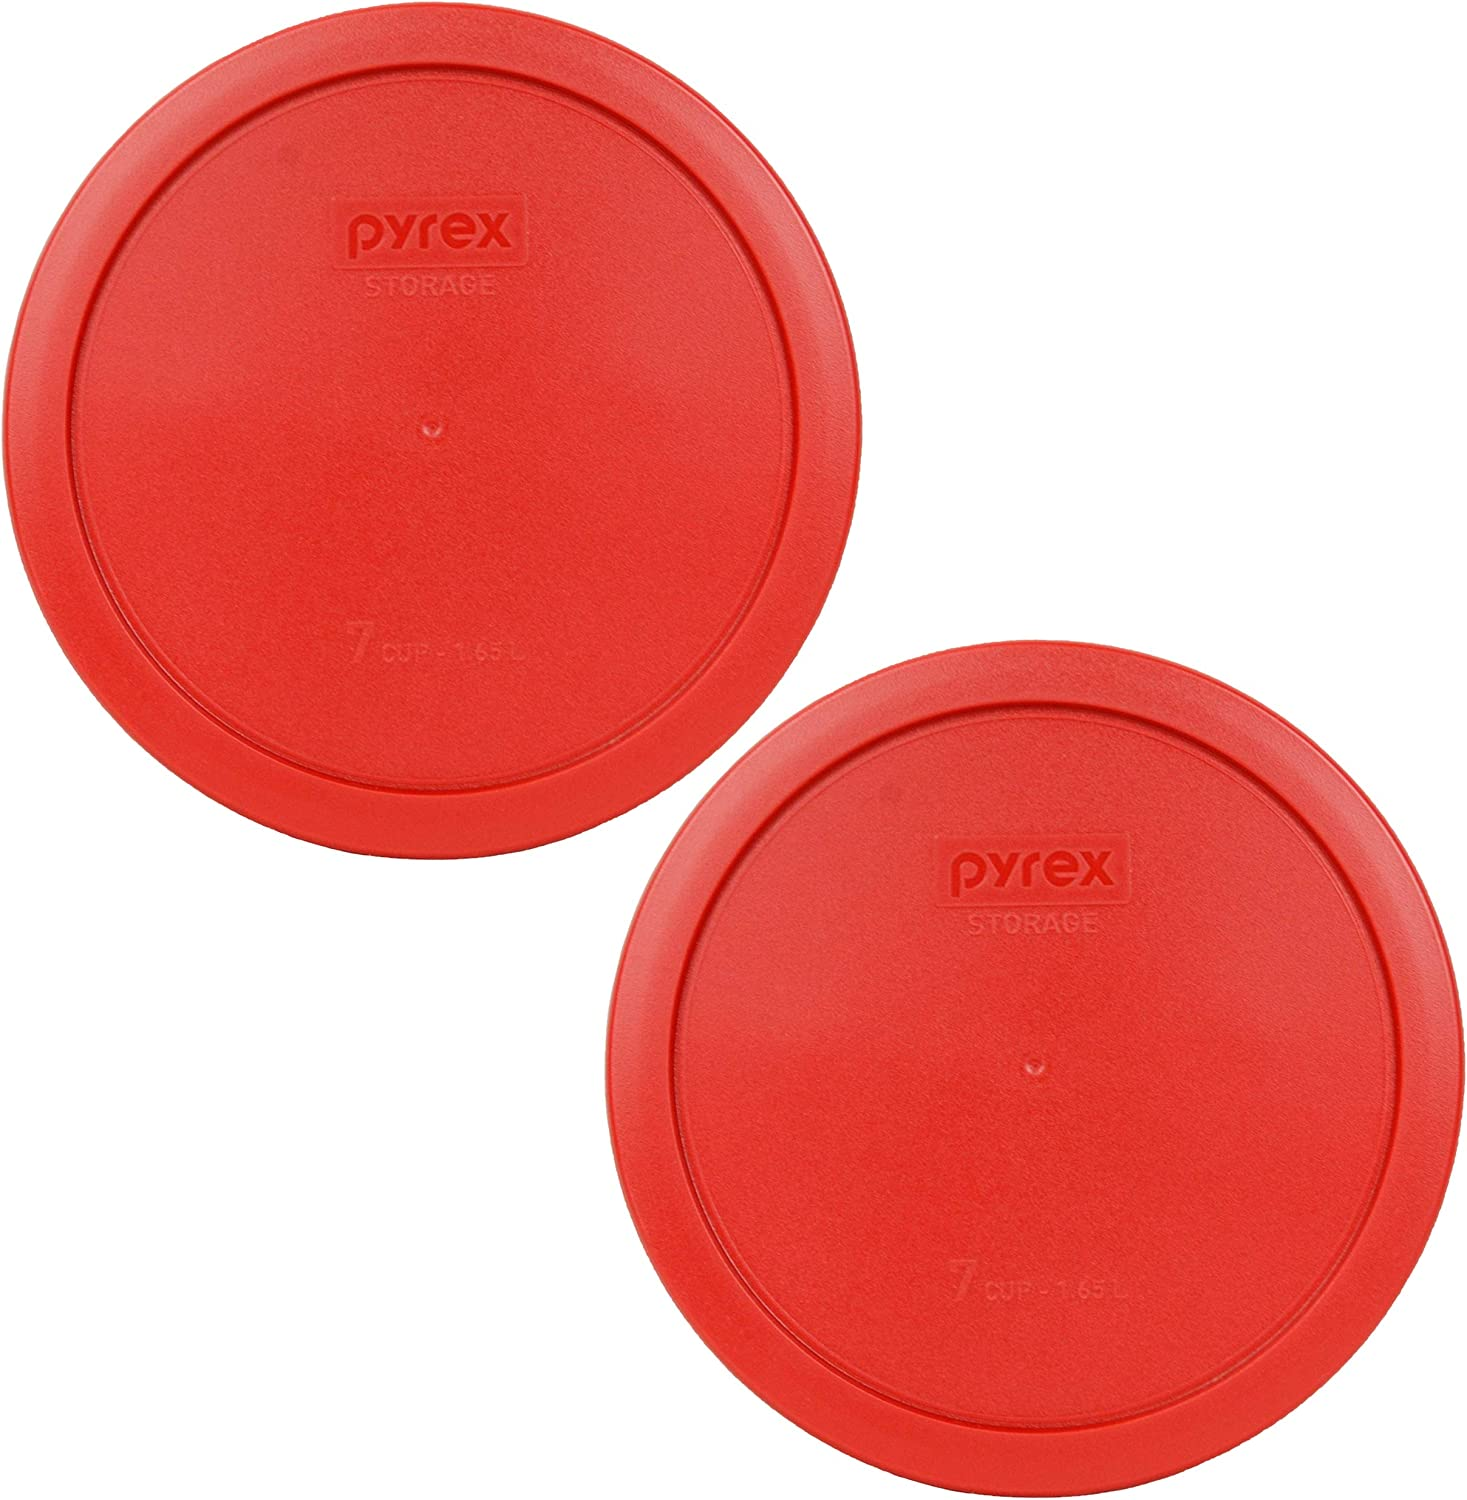 Pyrex 7402-PC 6/7 Cup Poppy Red Round Plastic Food Storage Lid - 2 Pack